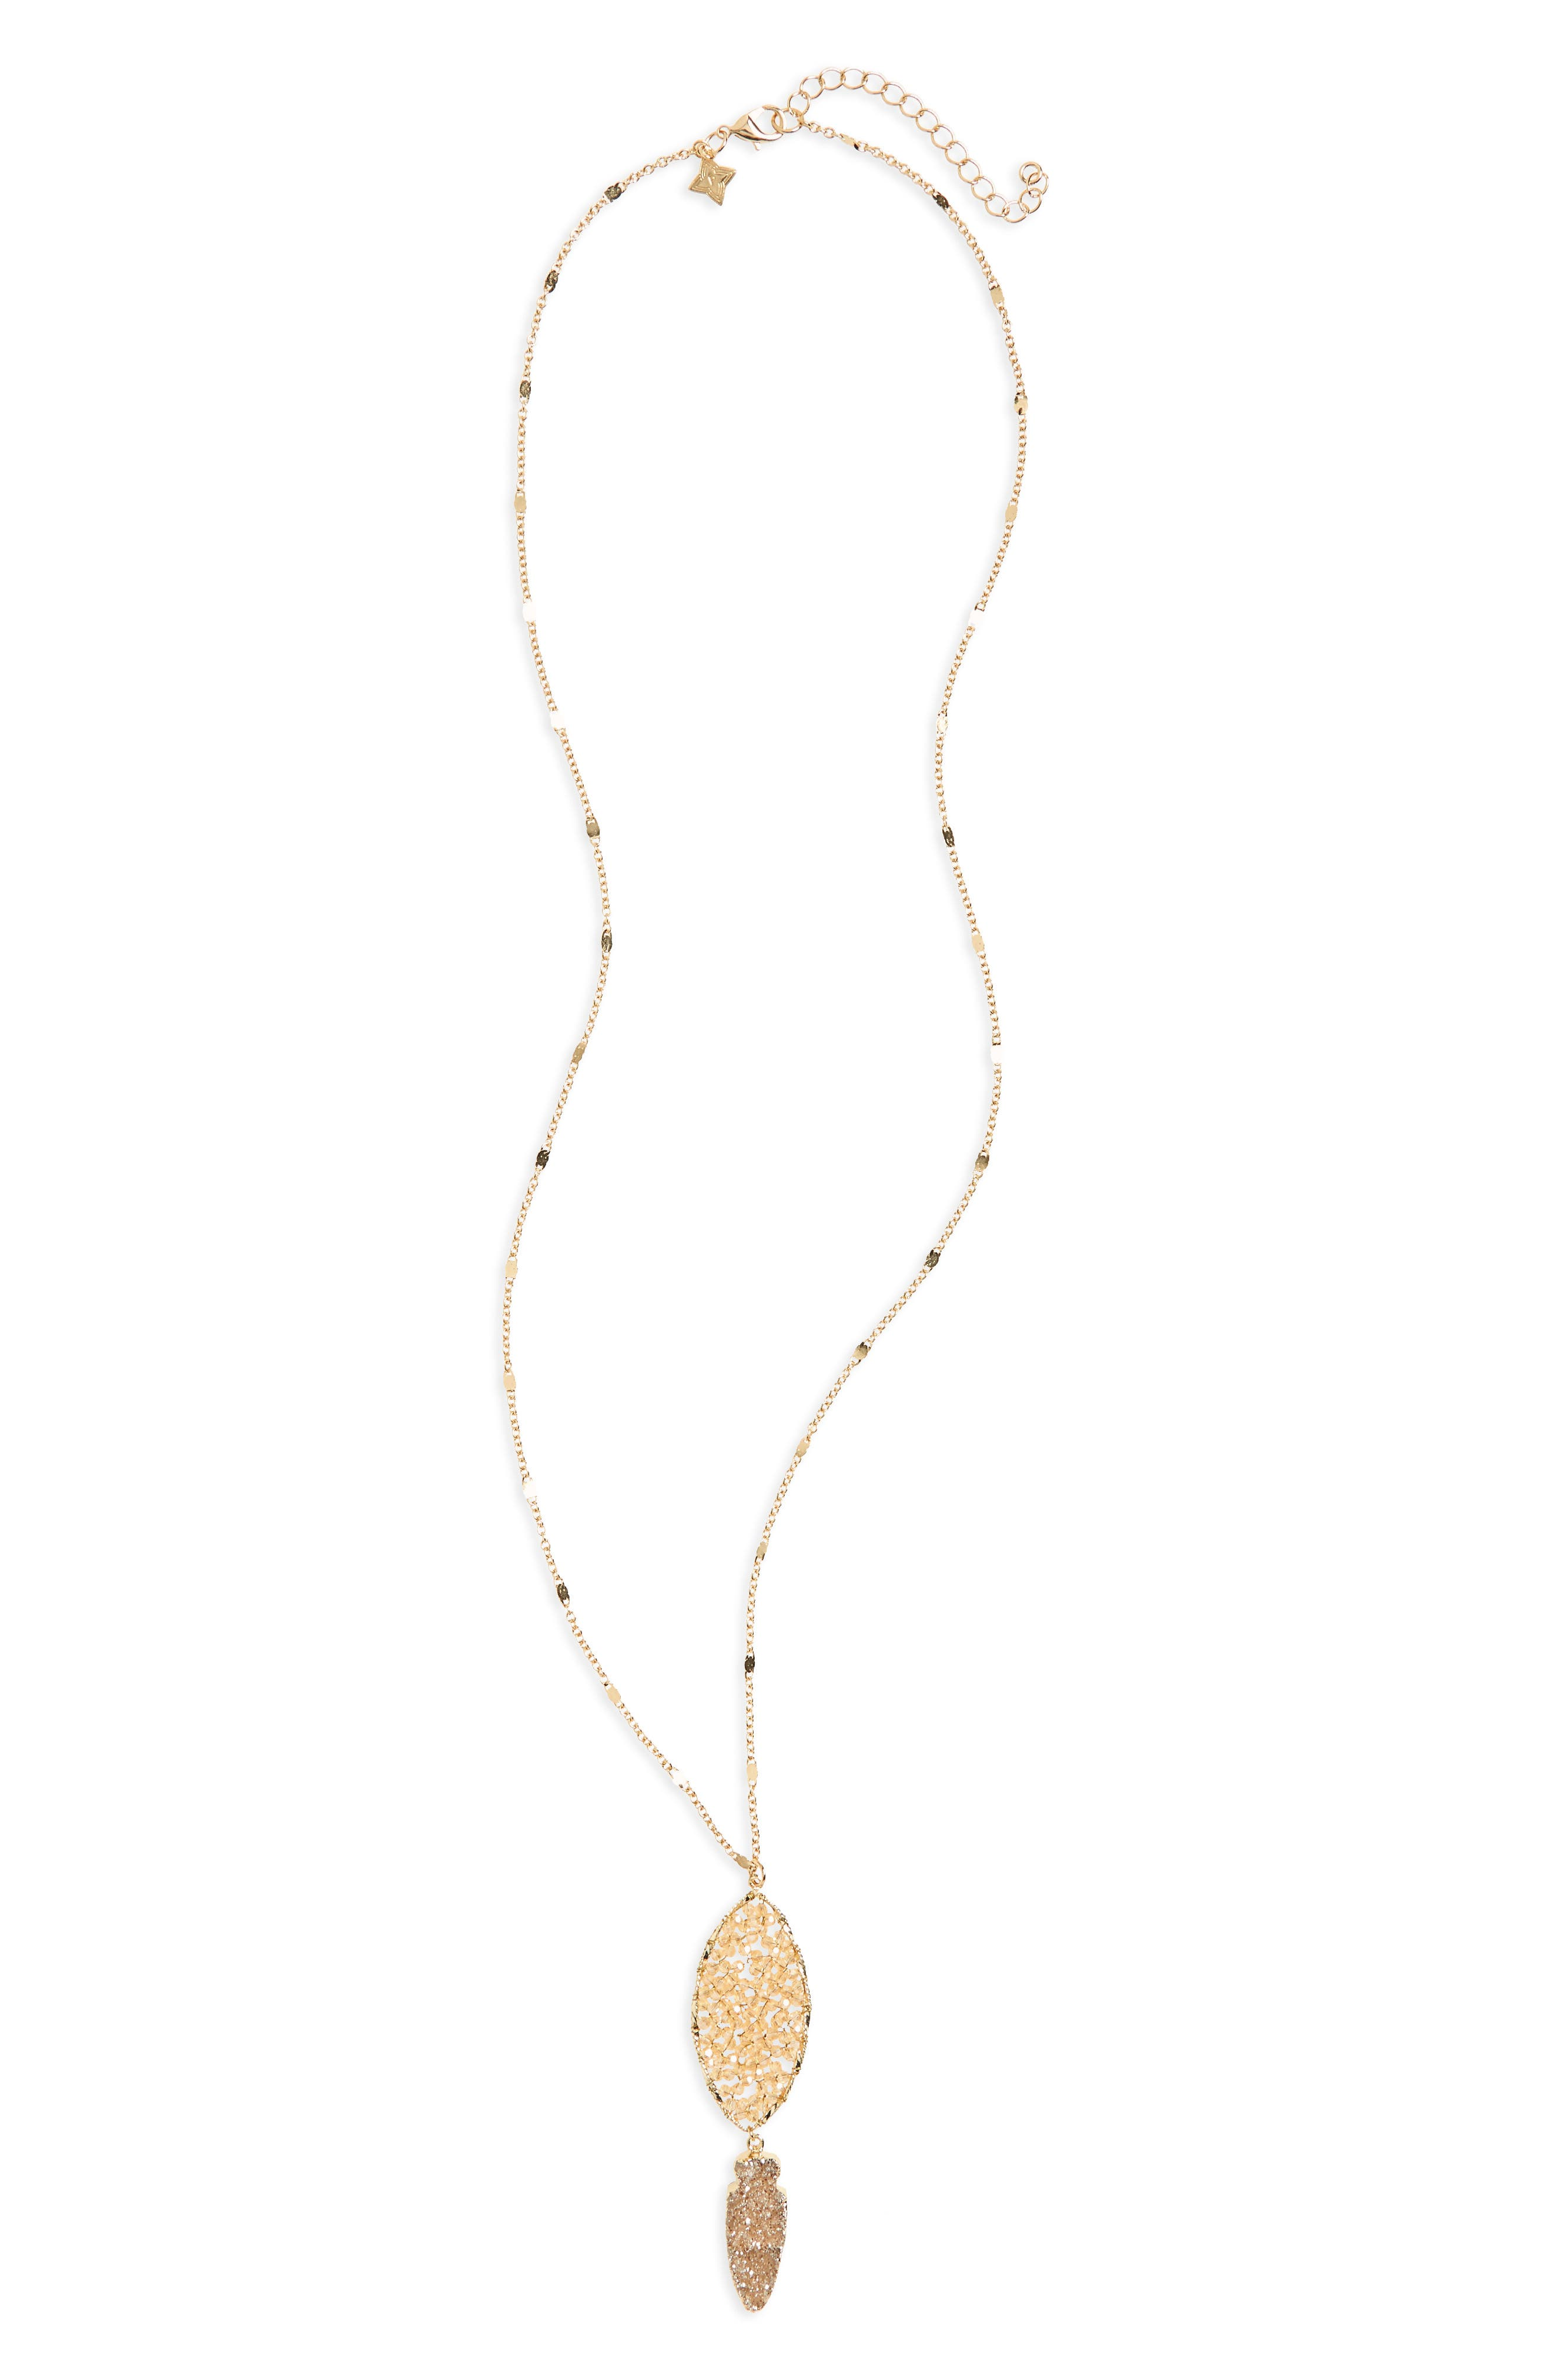 Main Image - Panacea Drusy Arrow Pendant Necklace